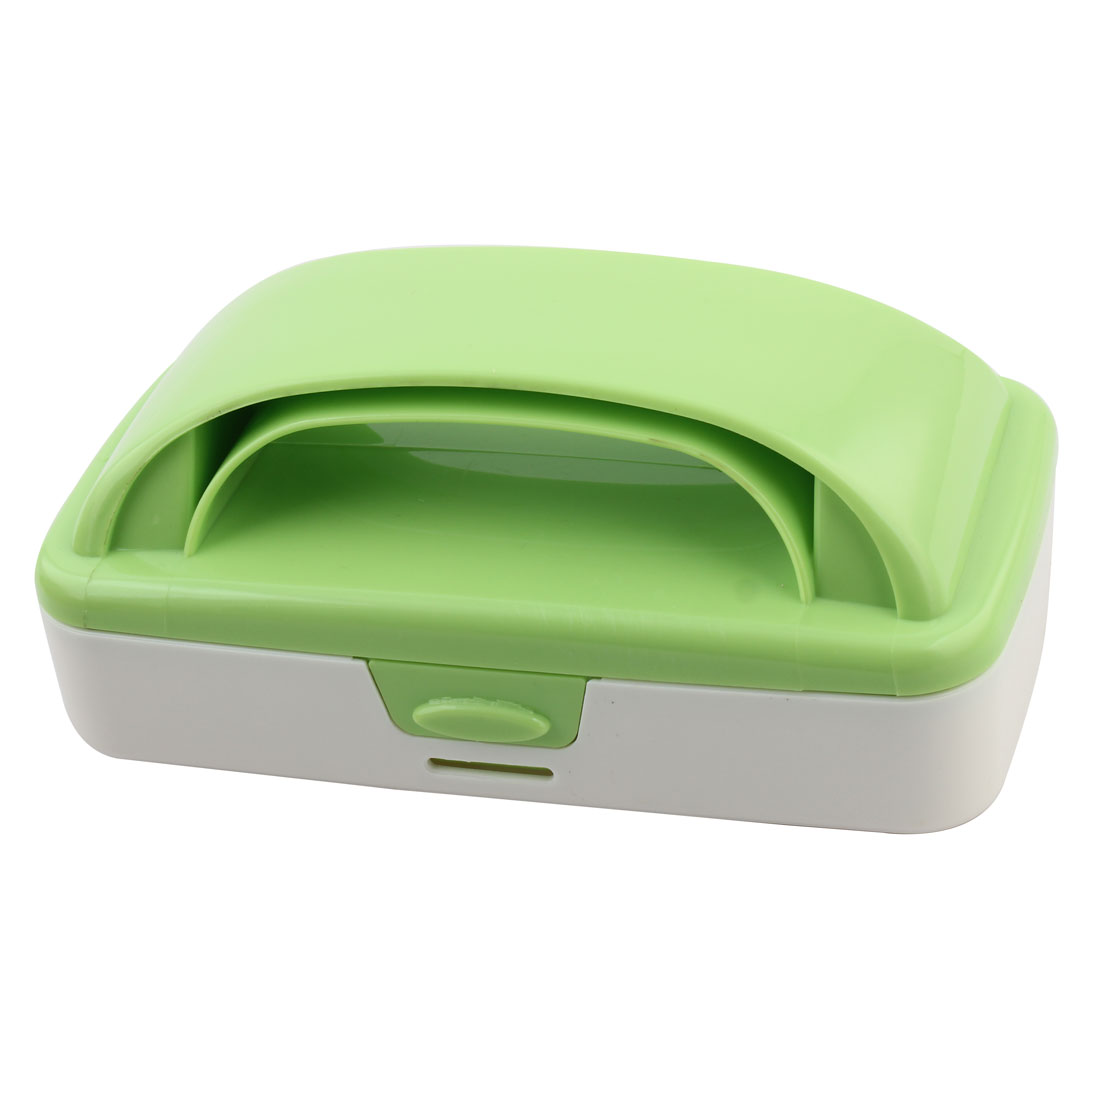 Household Bed Clothes Plastic Dual purpose Dust Removing Collector Brush Green - image 4 of 4